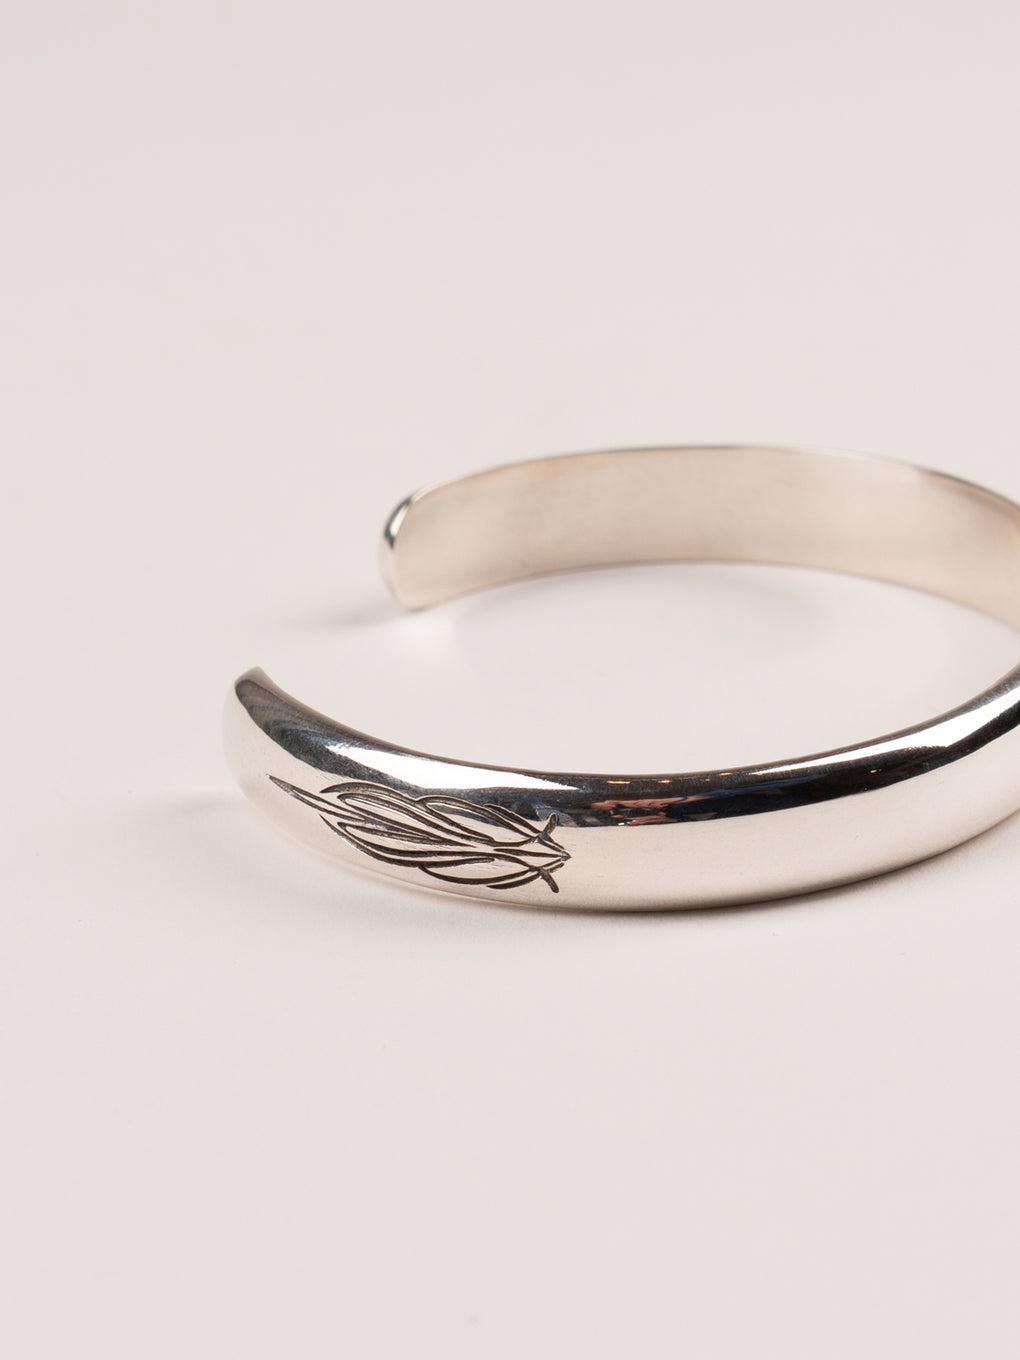 Pinstripe Bangle V2 Silver 925